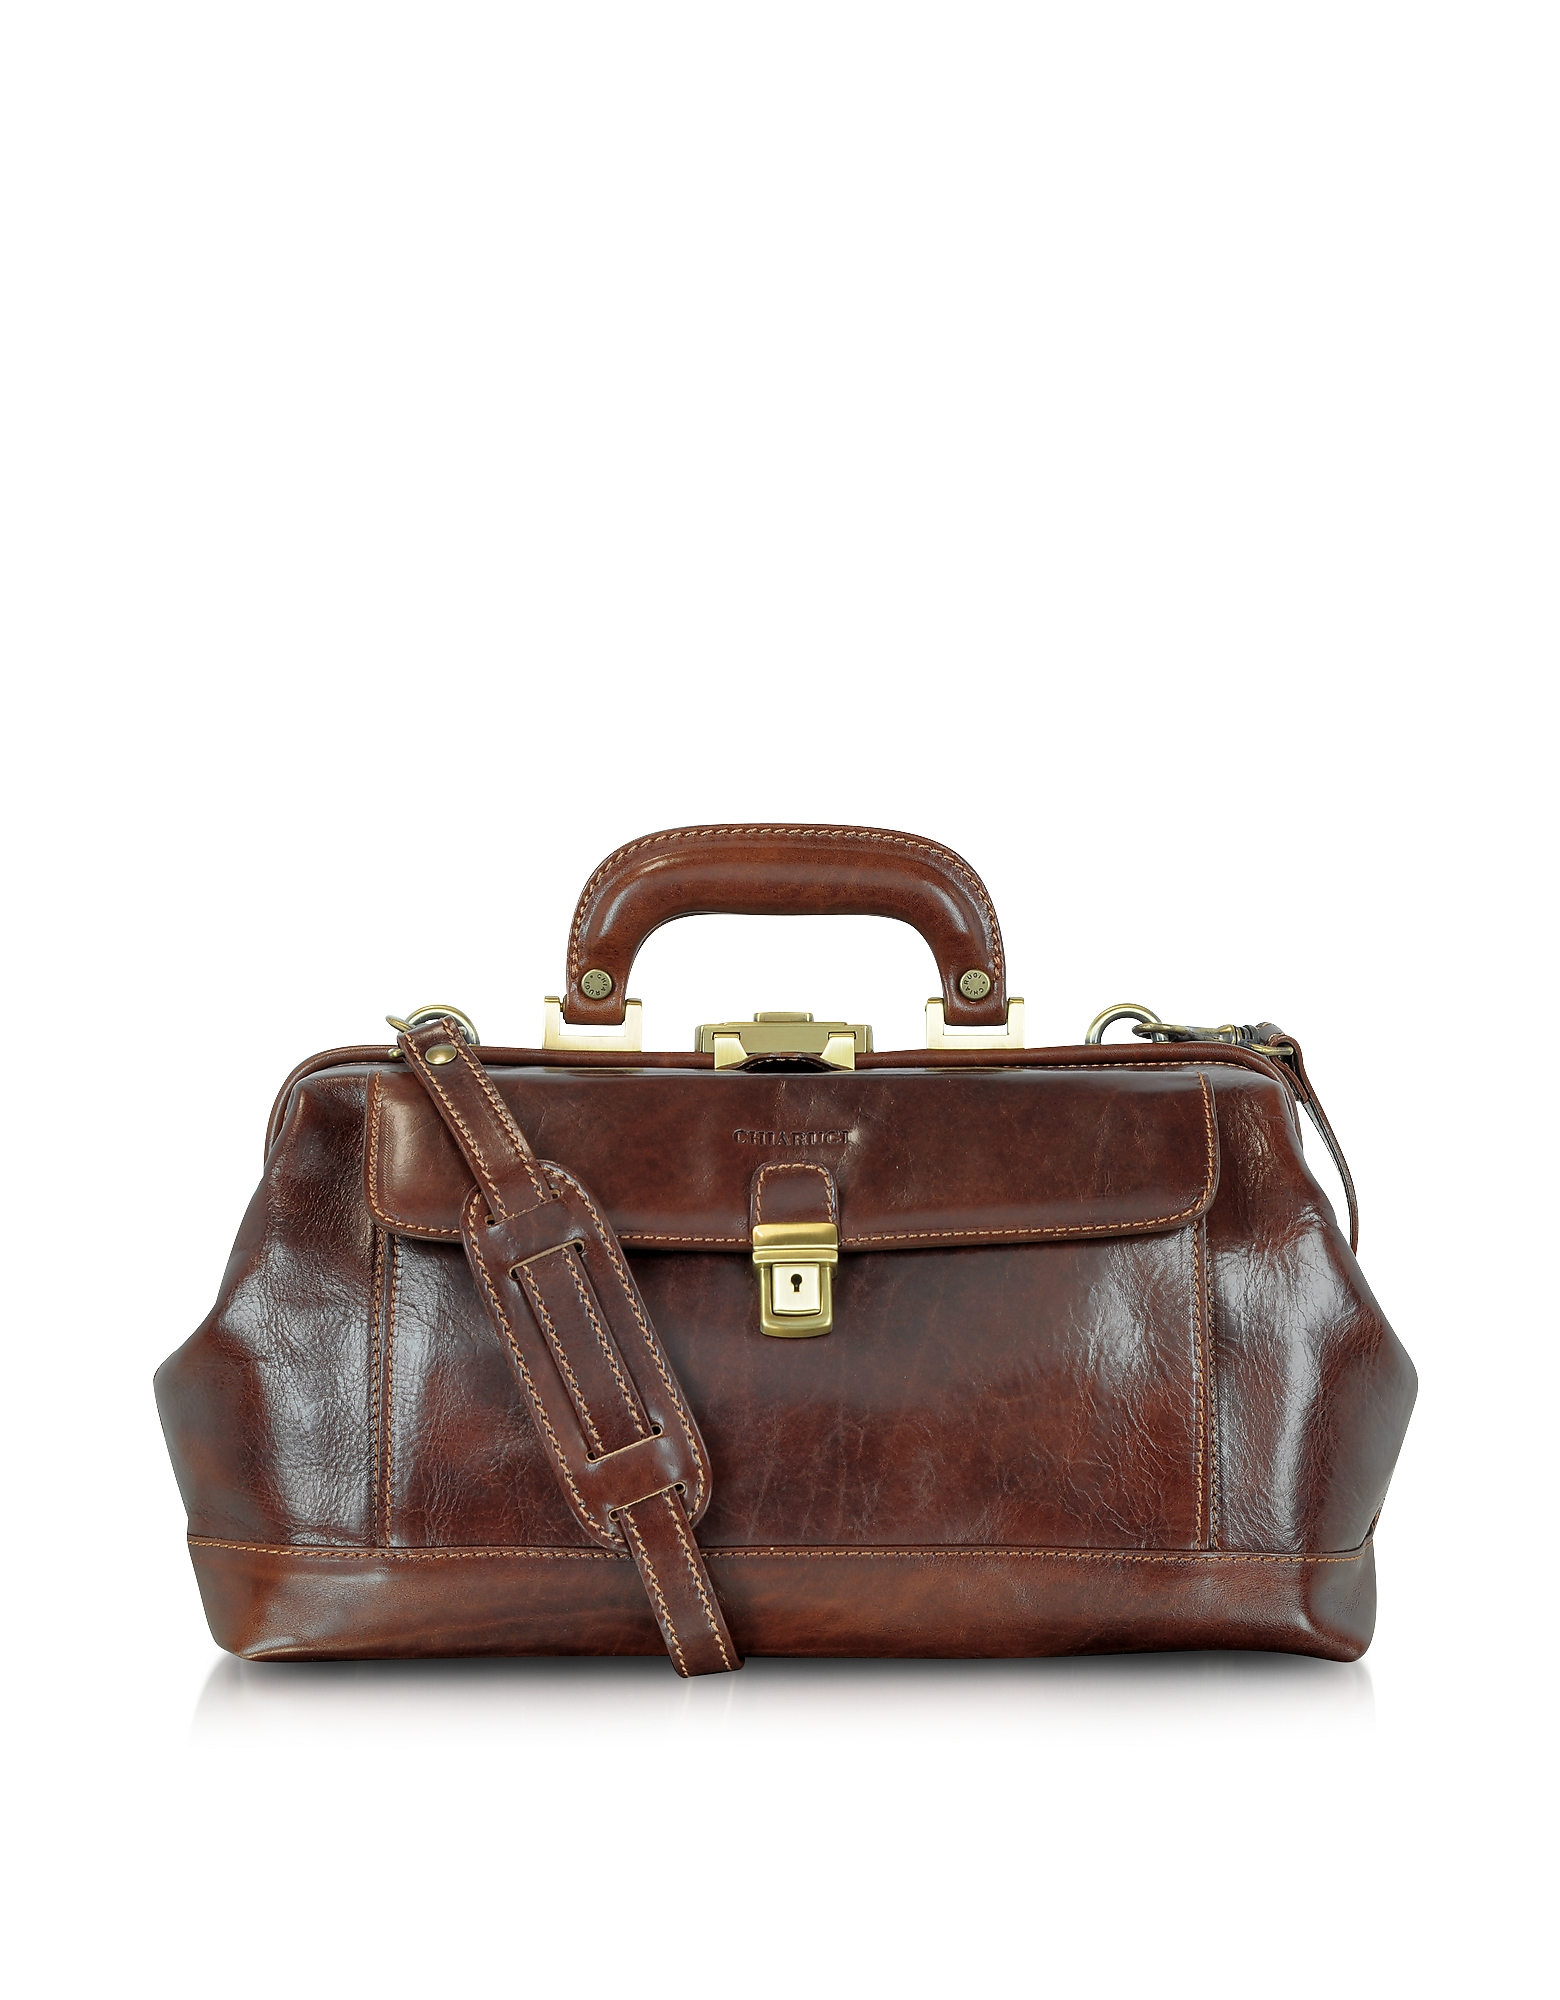 Chiarugi Briefcases, Handmade Brown Leather Professional Doctor Bag